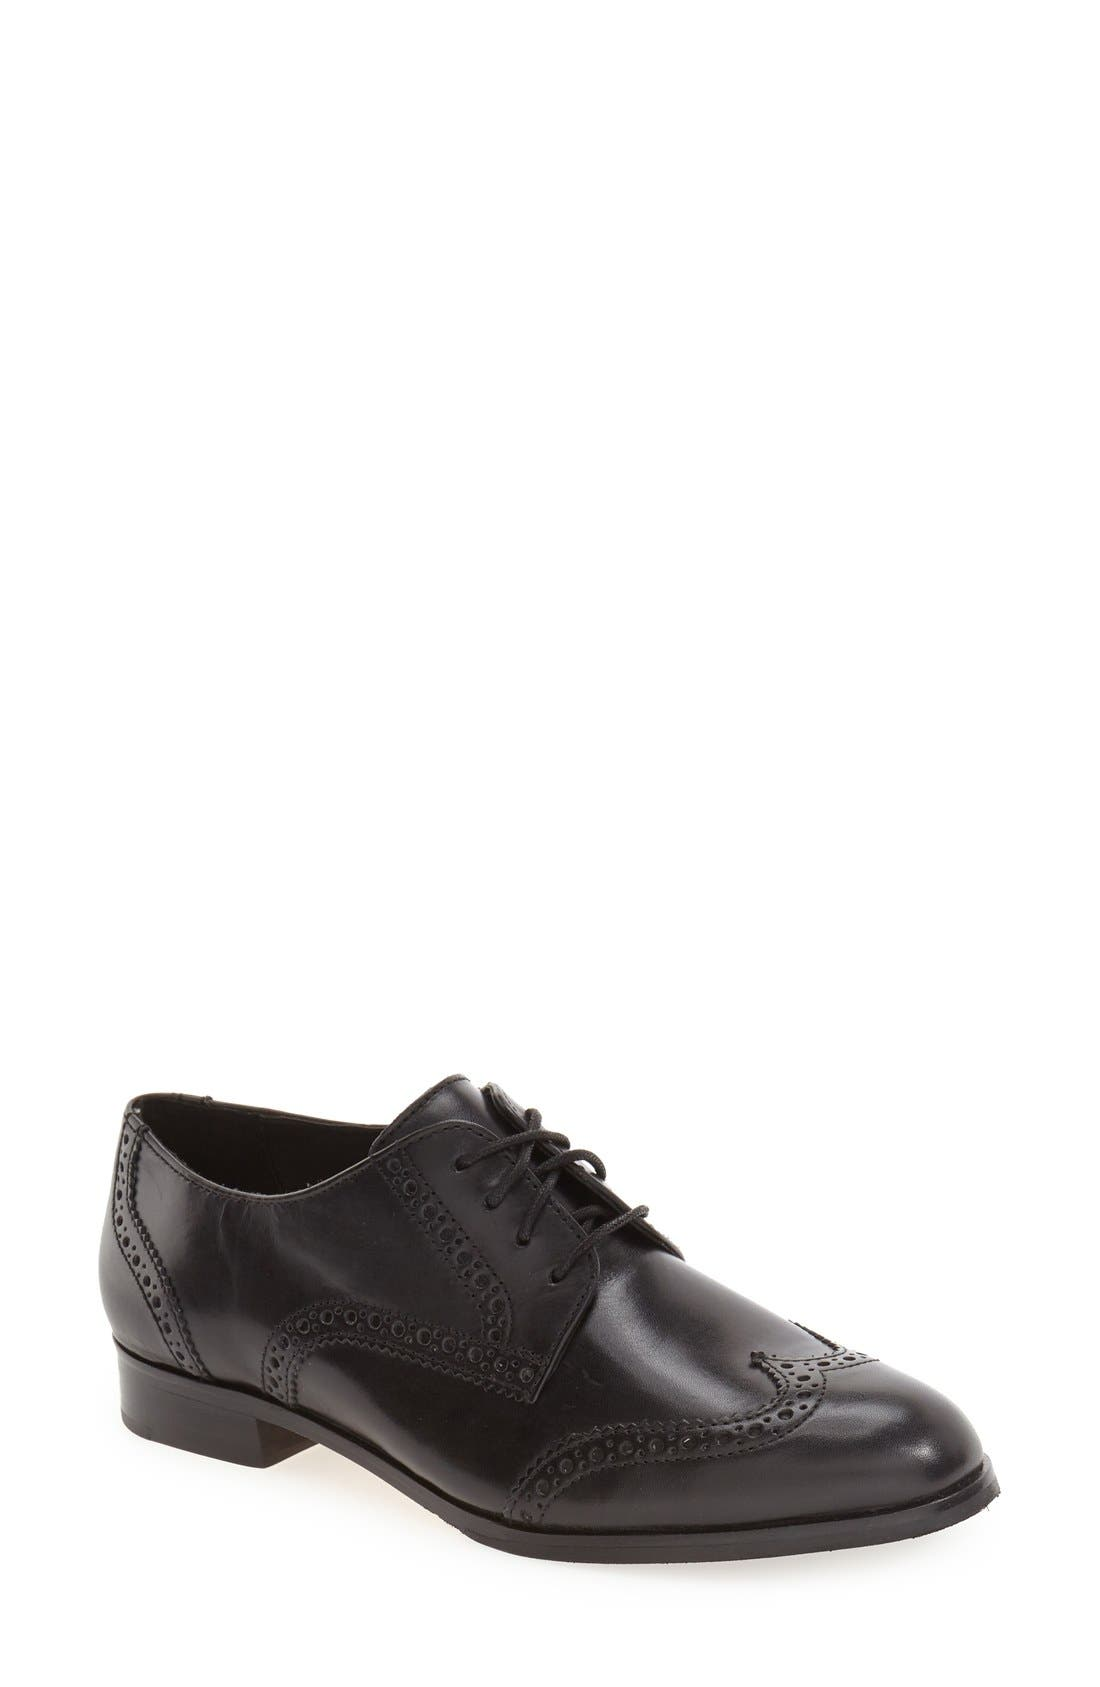 COLE HAAN,                             Grand.OS Oxford,                             Main thumbnail 1, color,                             001